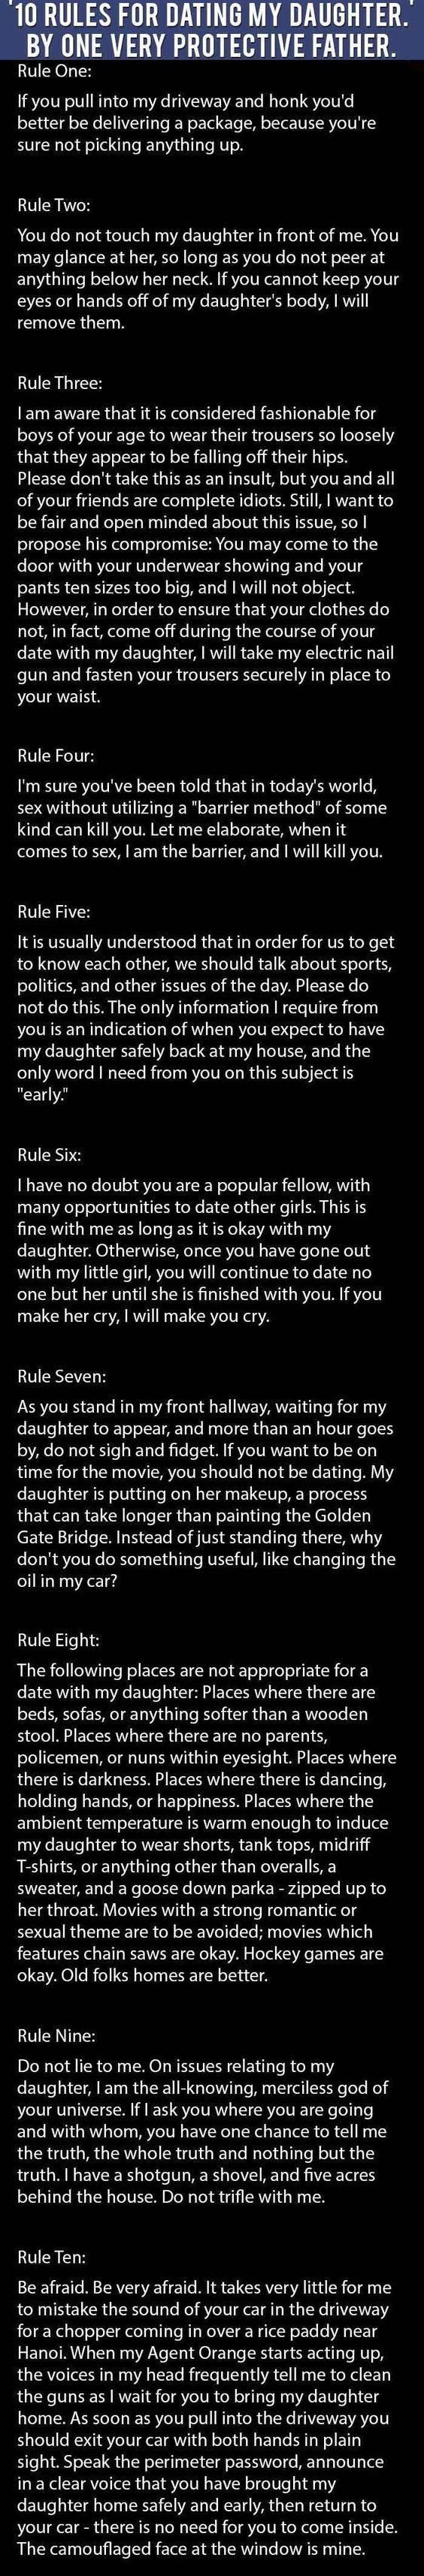 Dad's rules for dating my son